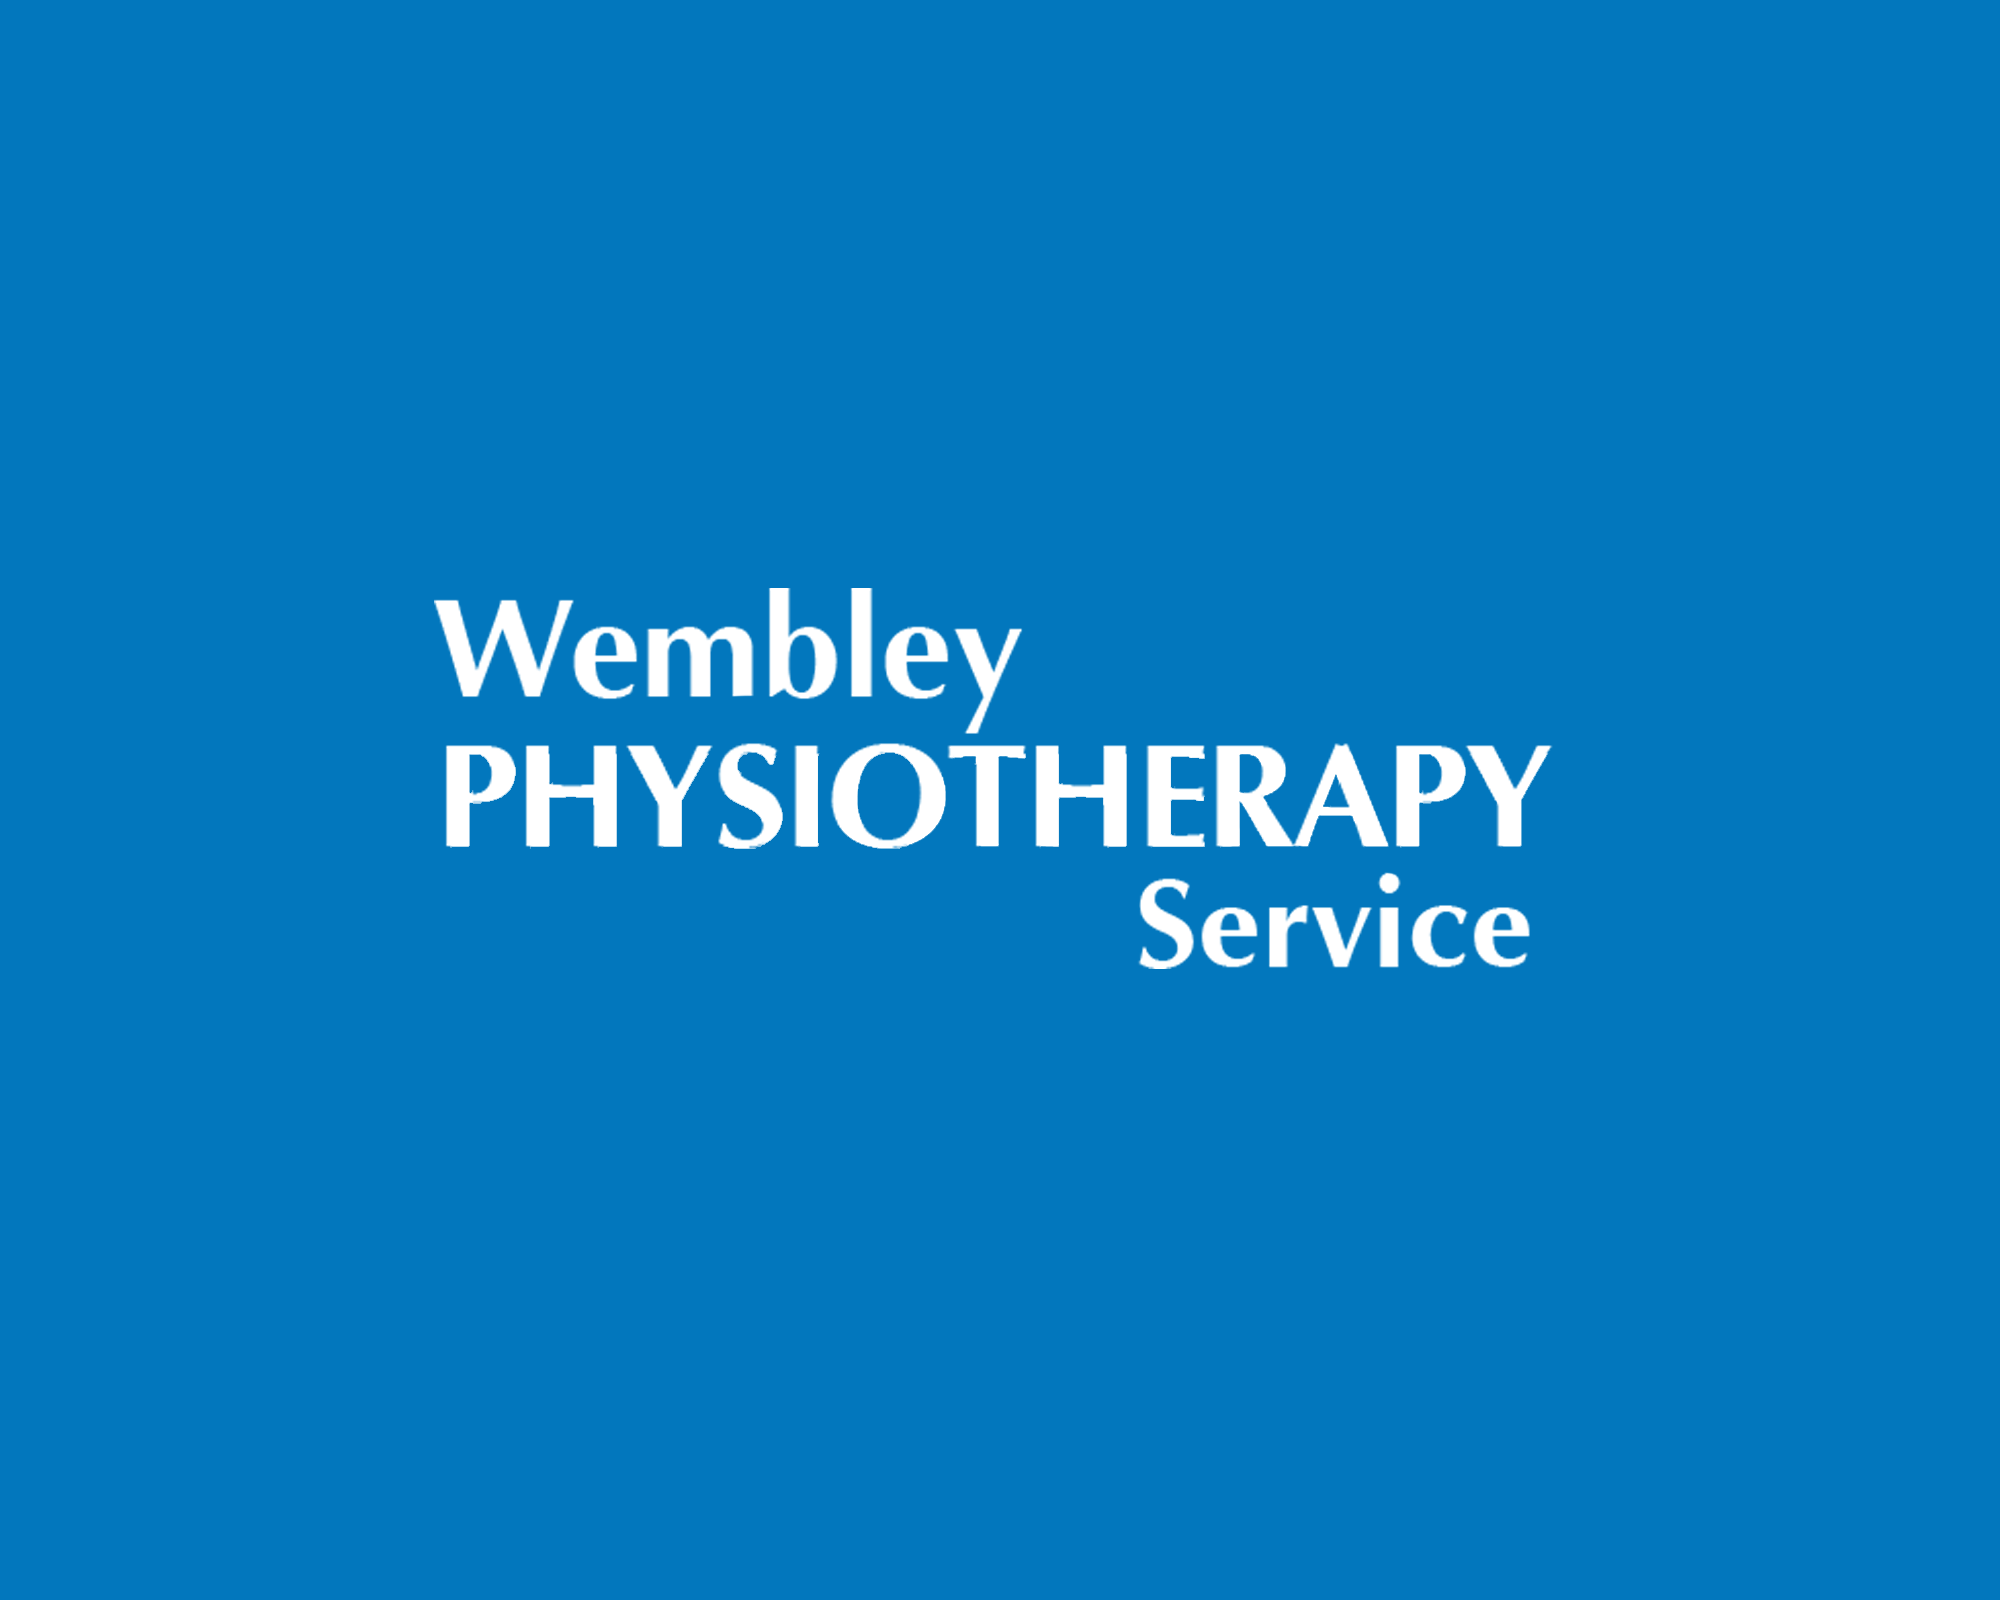 wembley physiotherapy service Logo